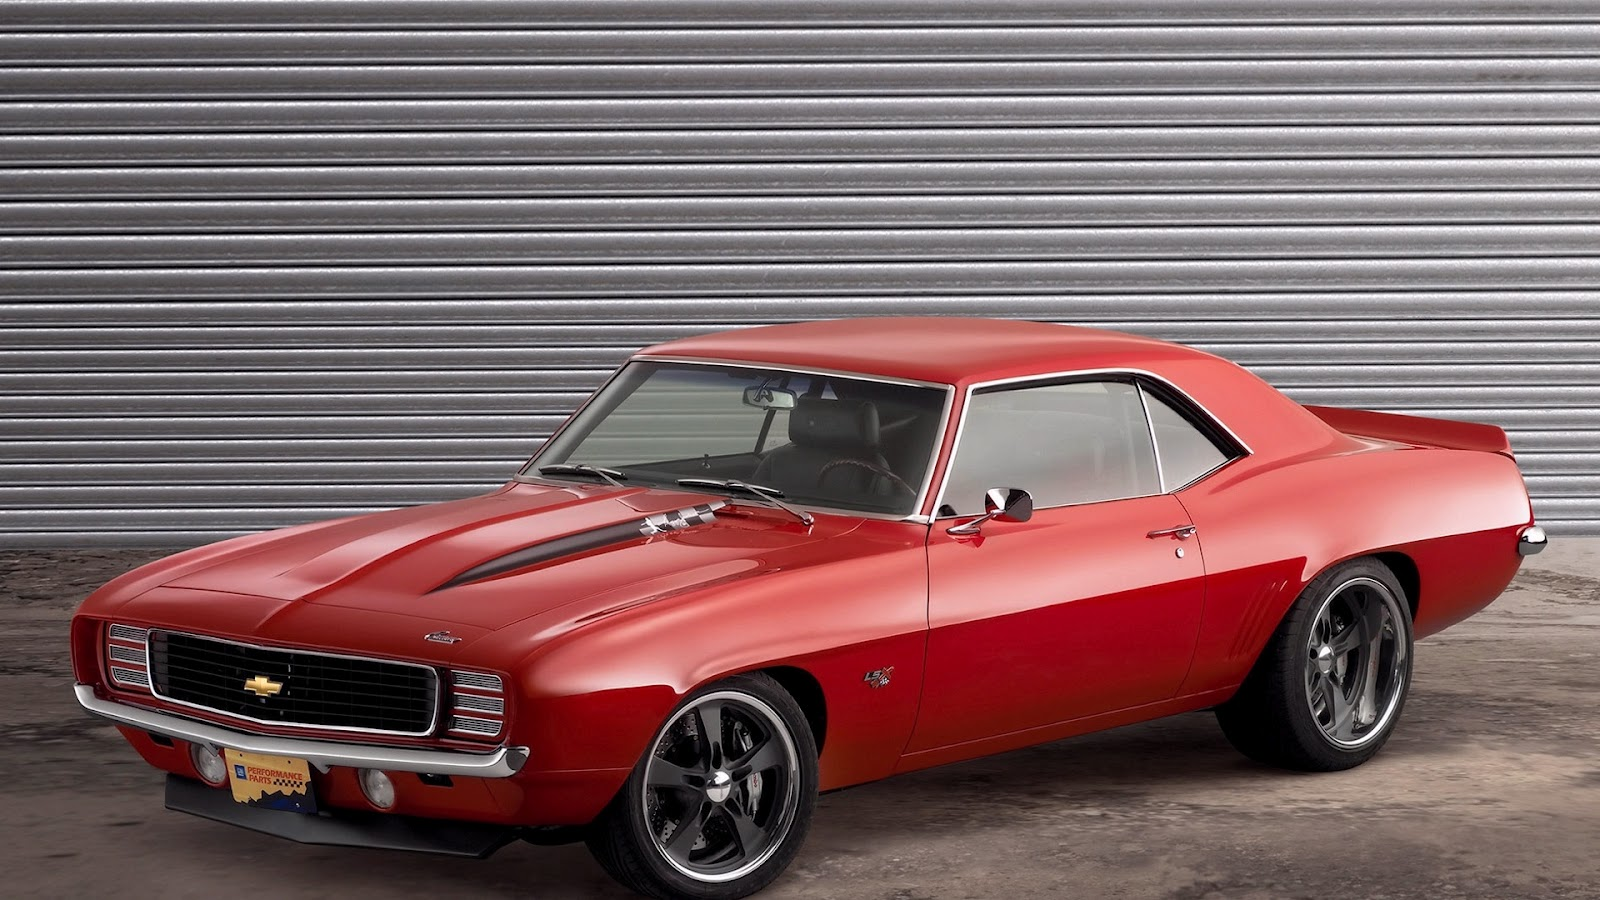 Red muscle Camaro SS 67 car wallpaper Home of Wallpapers 1600x900